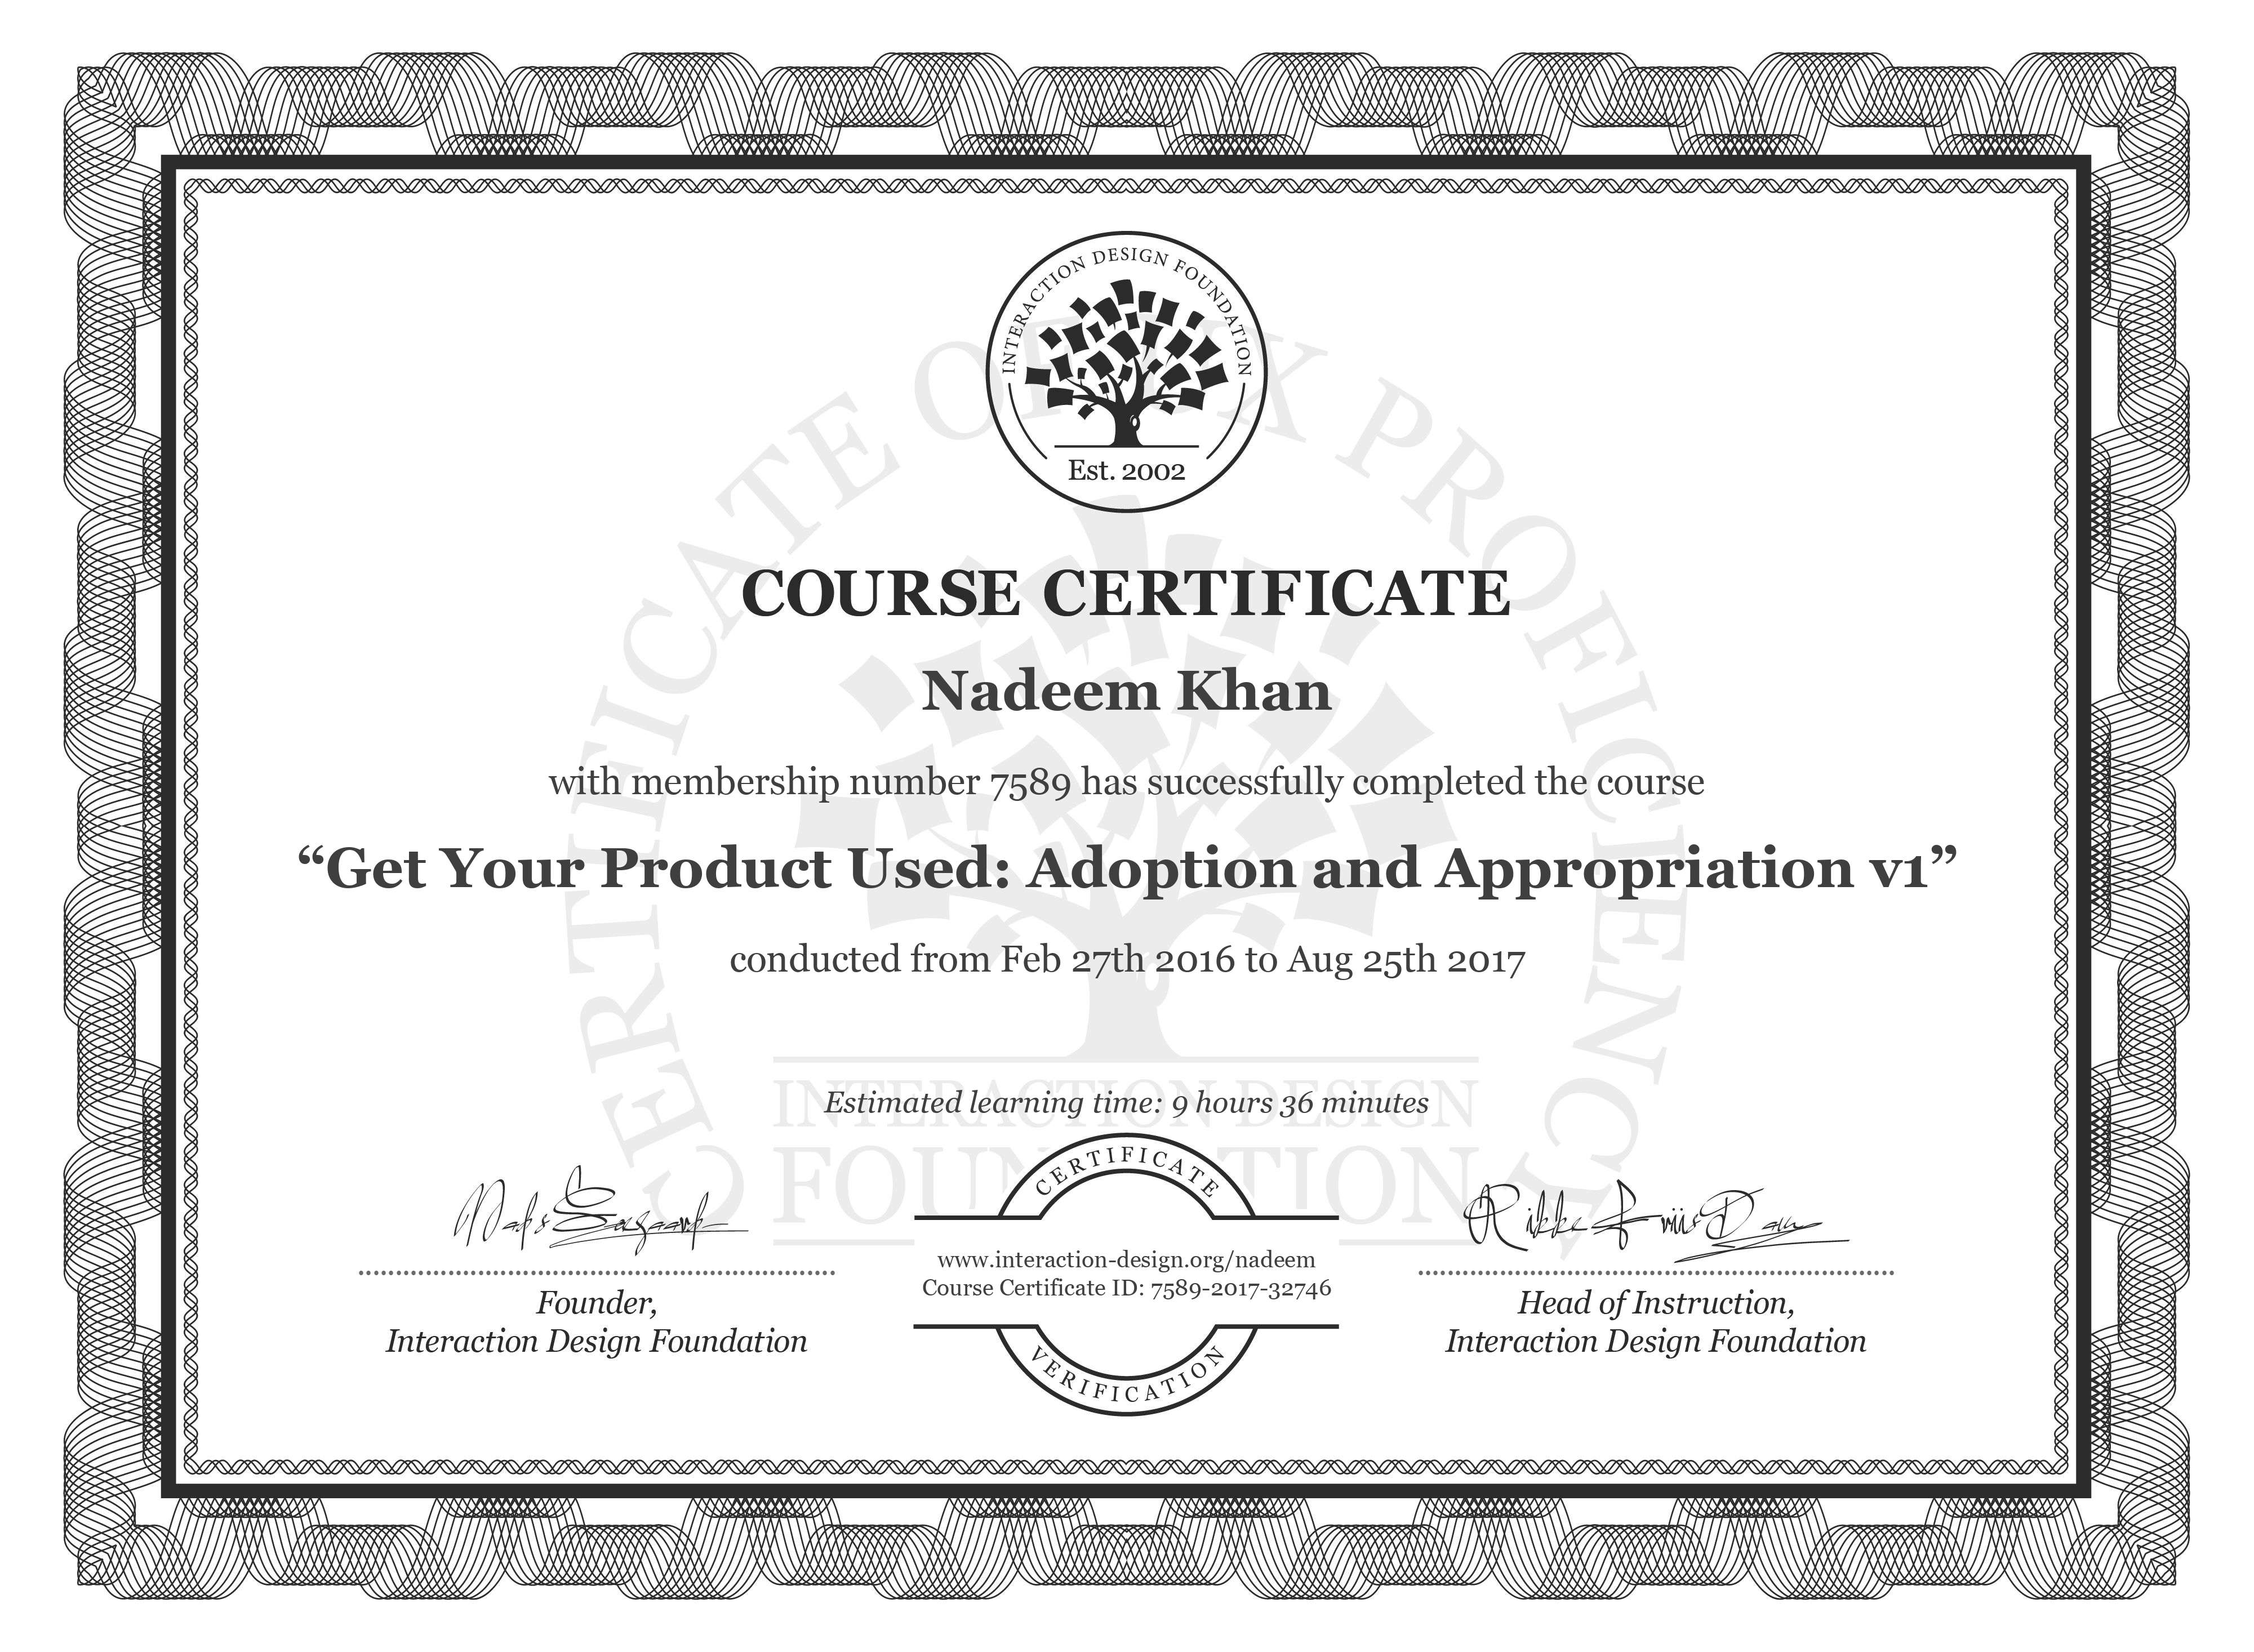 Nadeem Khan's Course Certificate: Get Your Product Used: Adoption and Appropriation